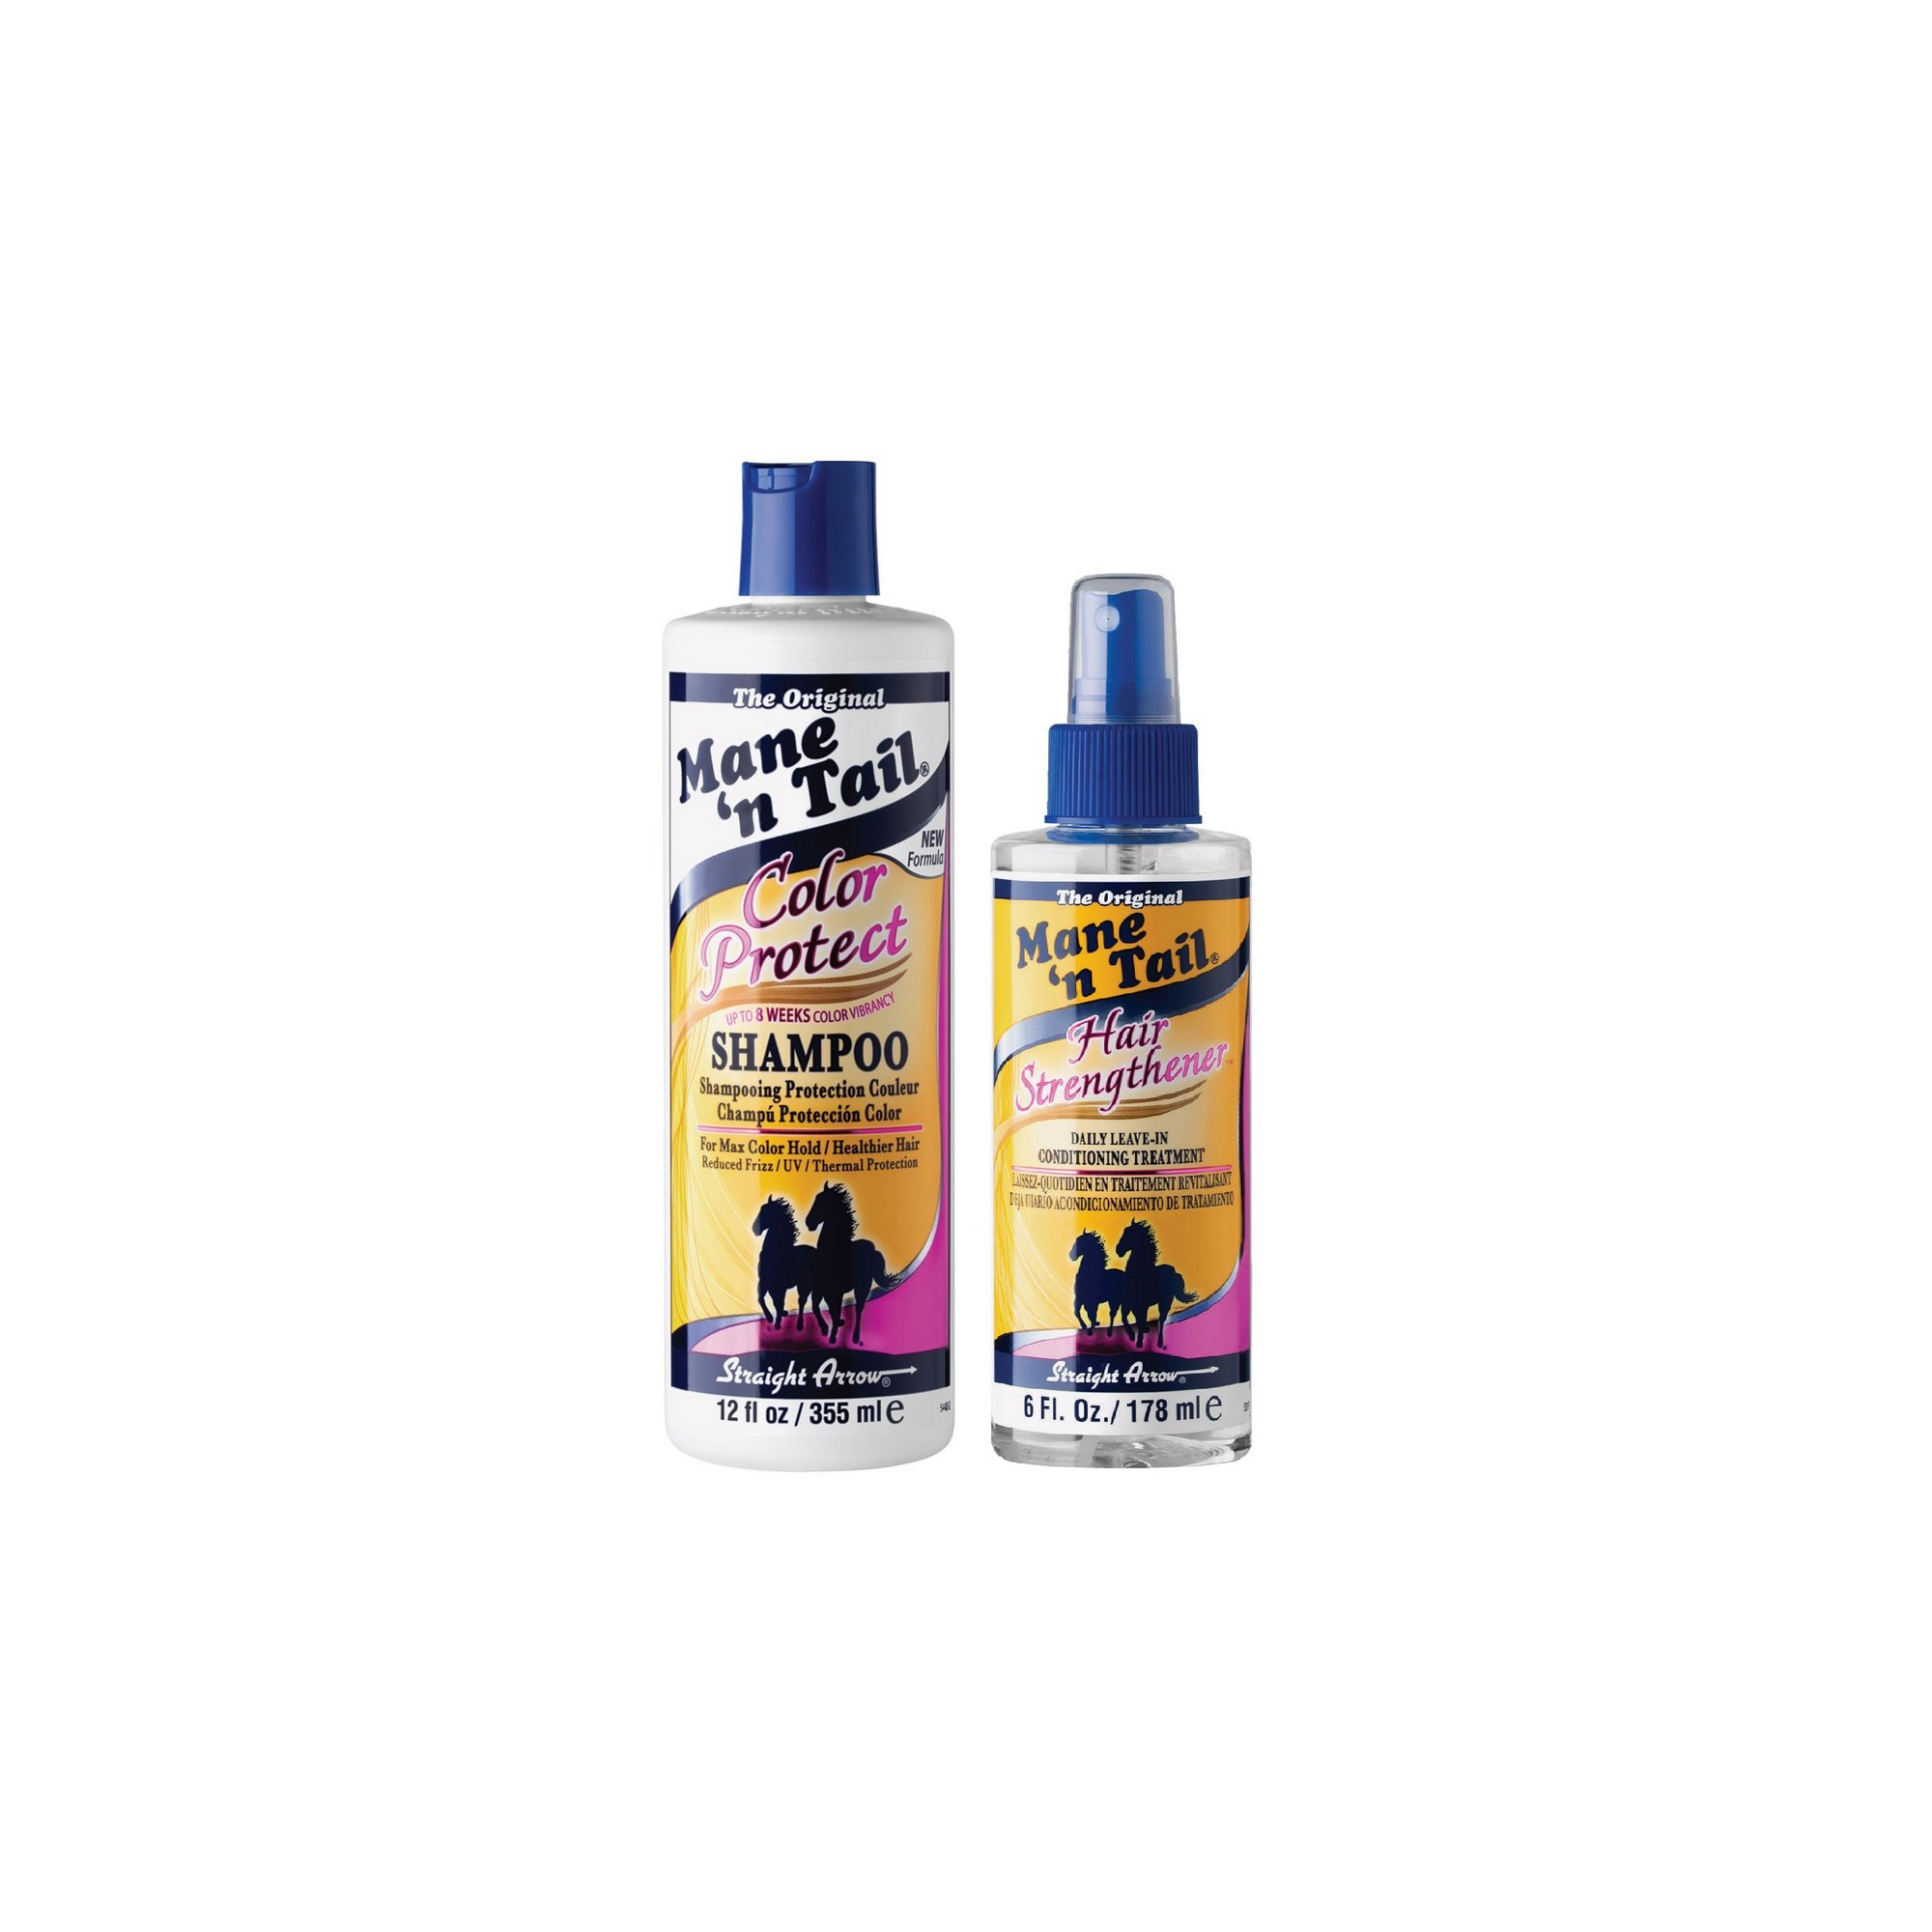 Image of Mane n Tail Colour Protect Shampoo + Strengthener Set